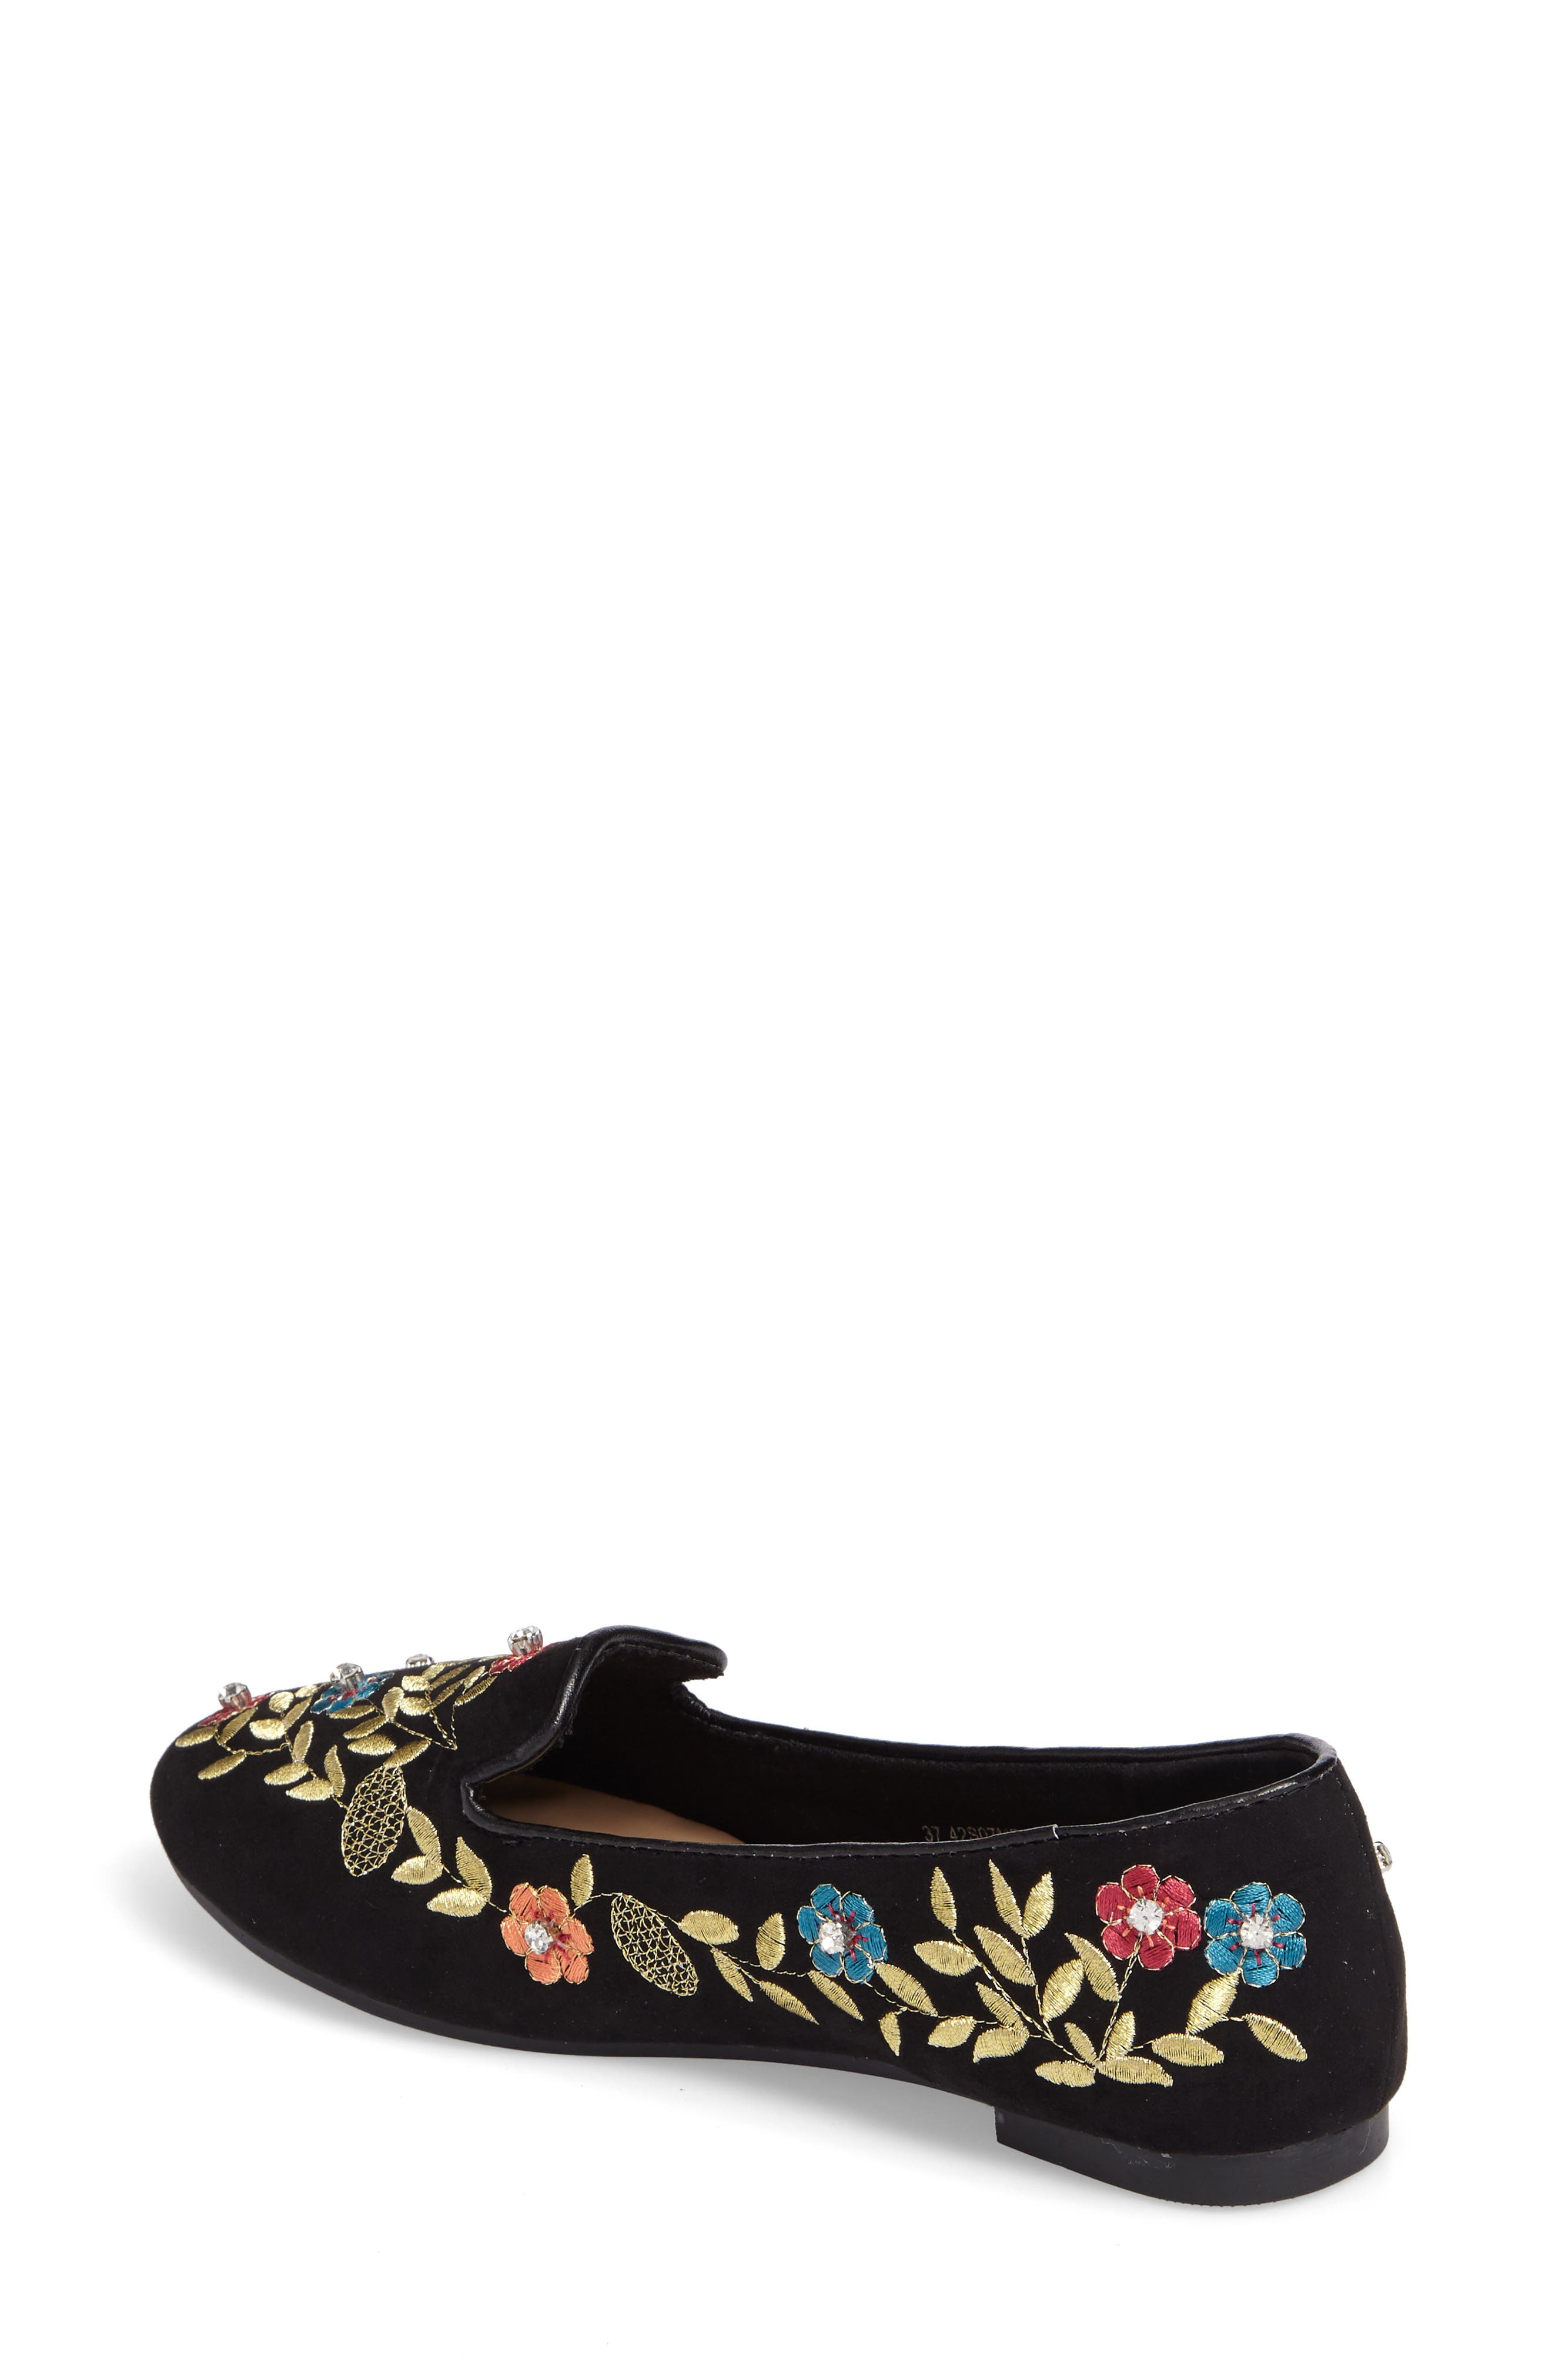 Sweetie Embroidered Loafer,                             Alternate thumbnail 2, color,                             001